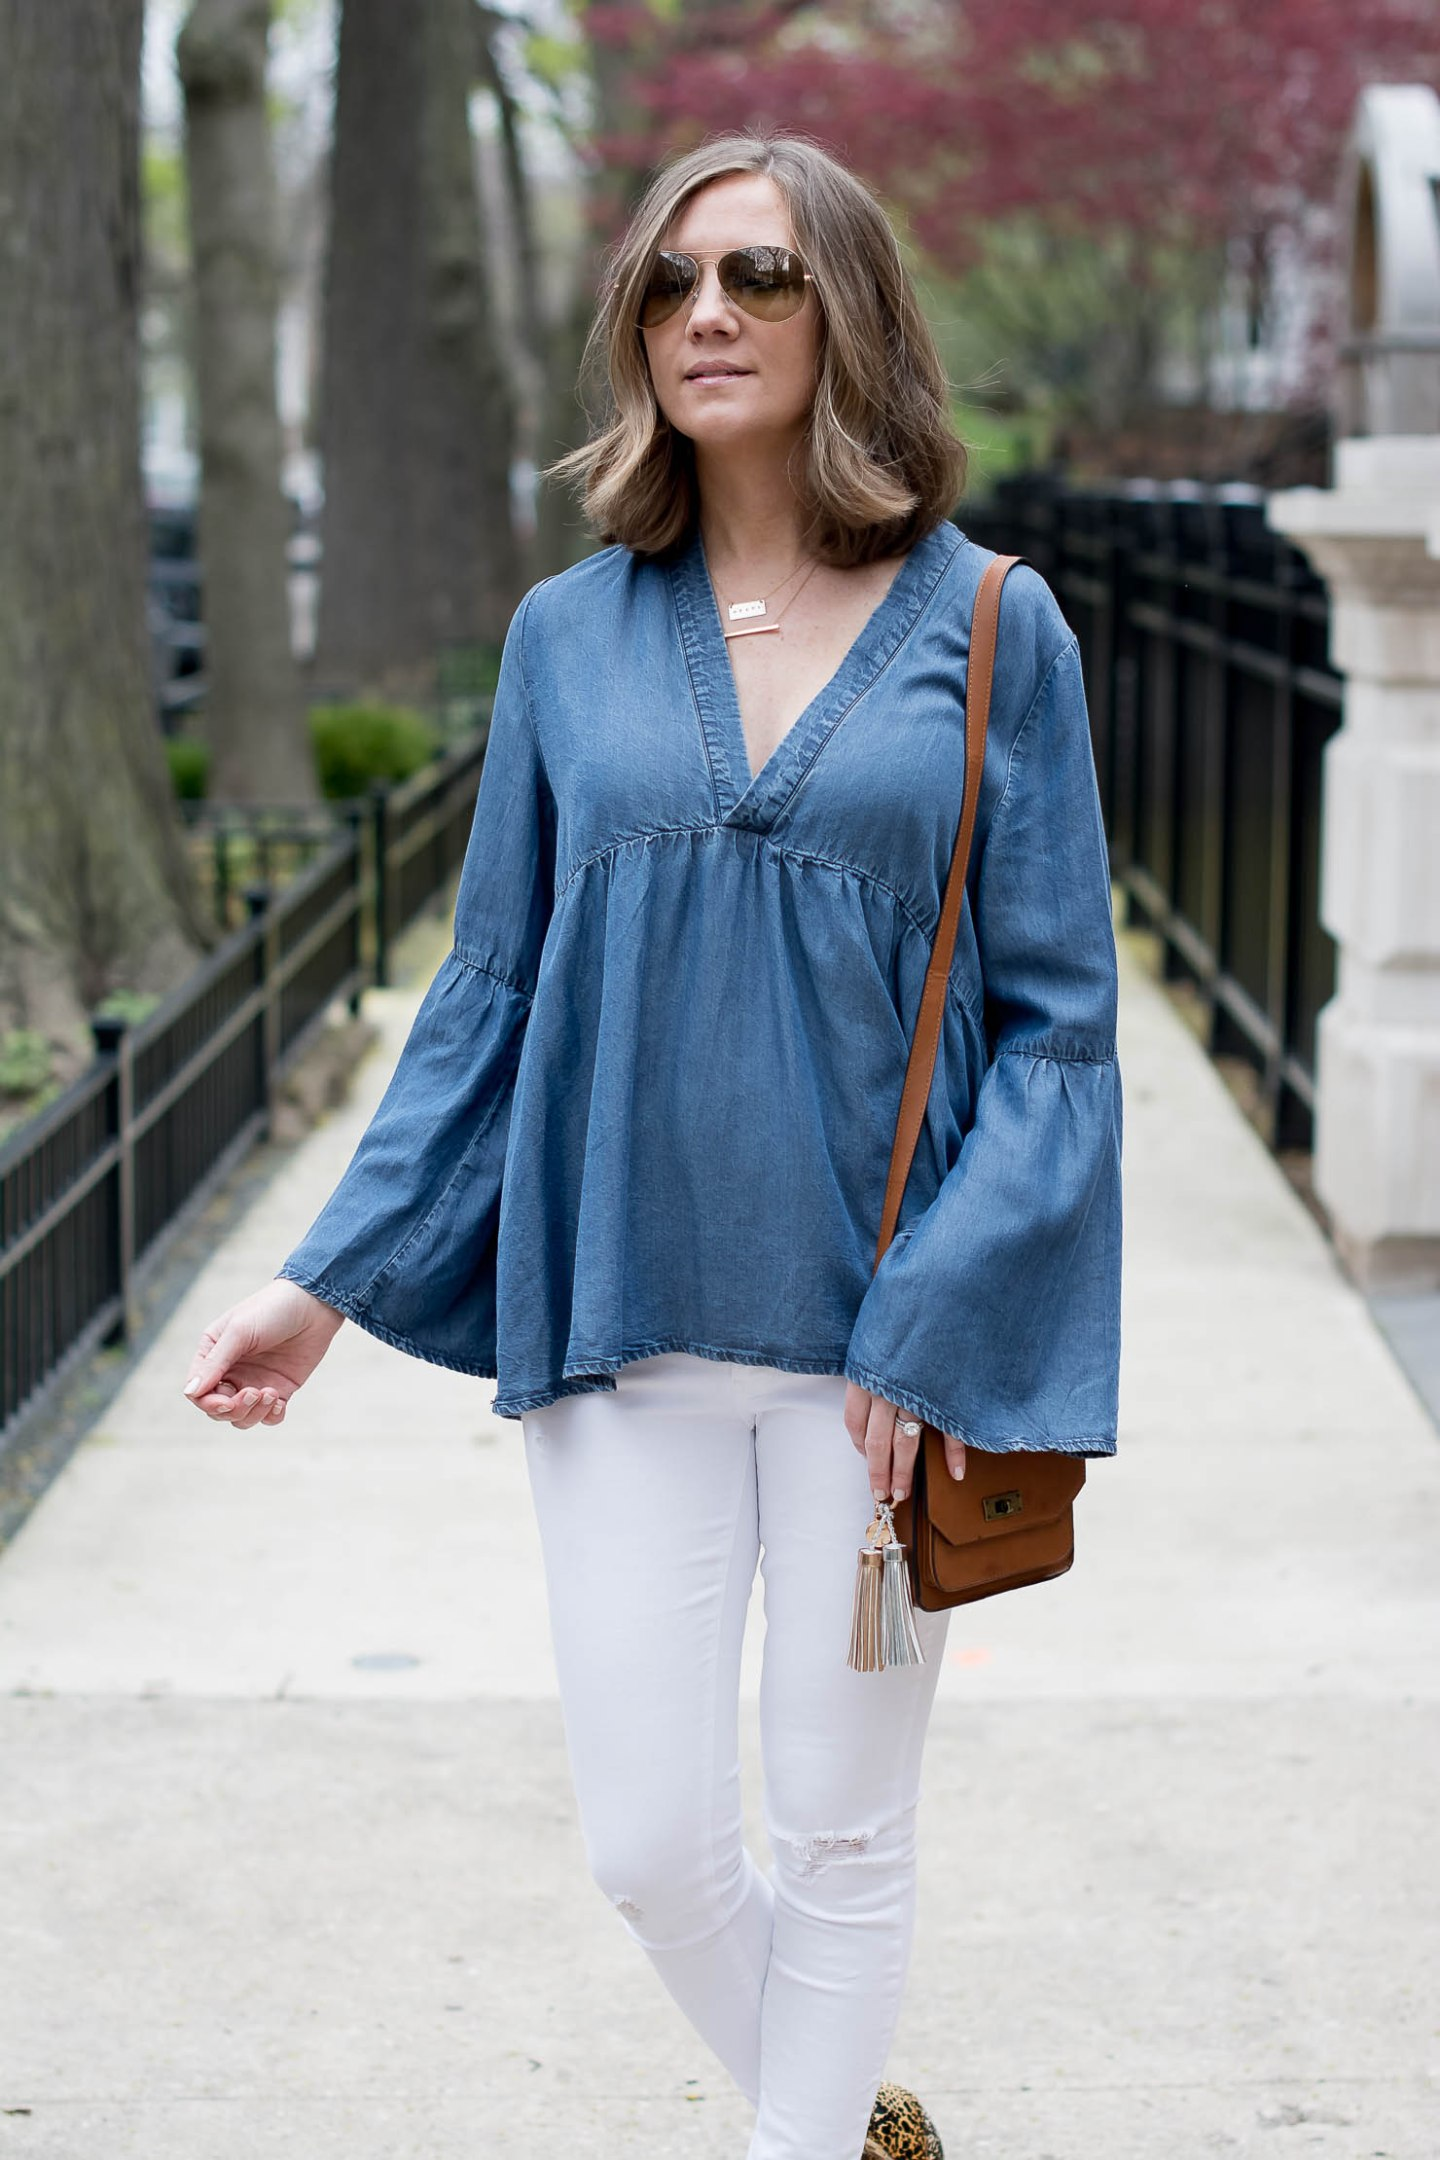 transitioning-white-jeans-for-fall-hm-denim-bell-sleeve-top-matisse-leopard-booties-metallic-bag-tassel-charms-5